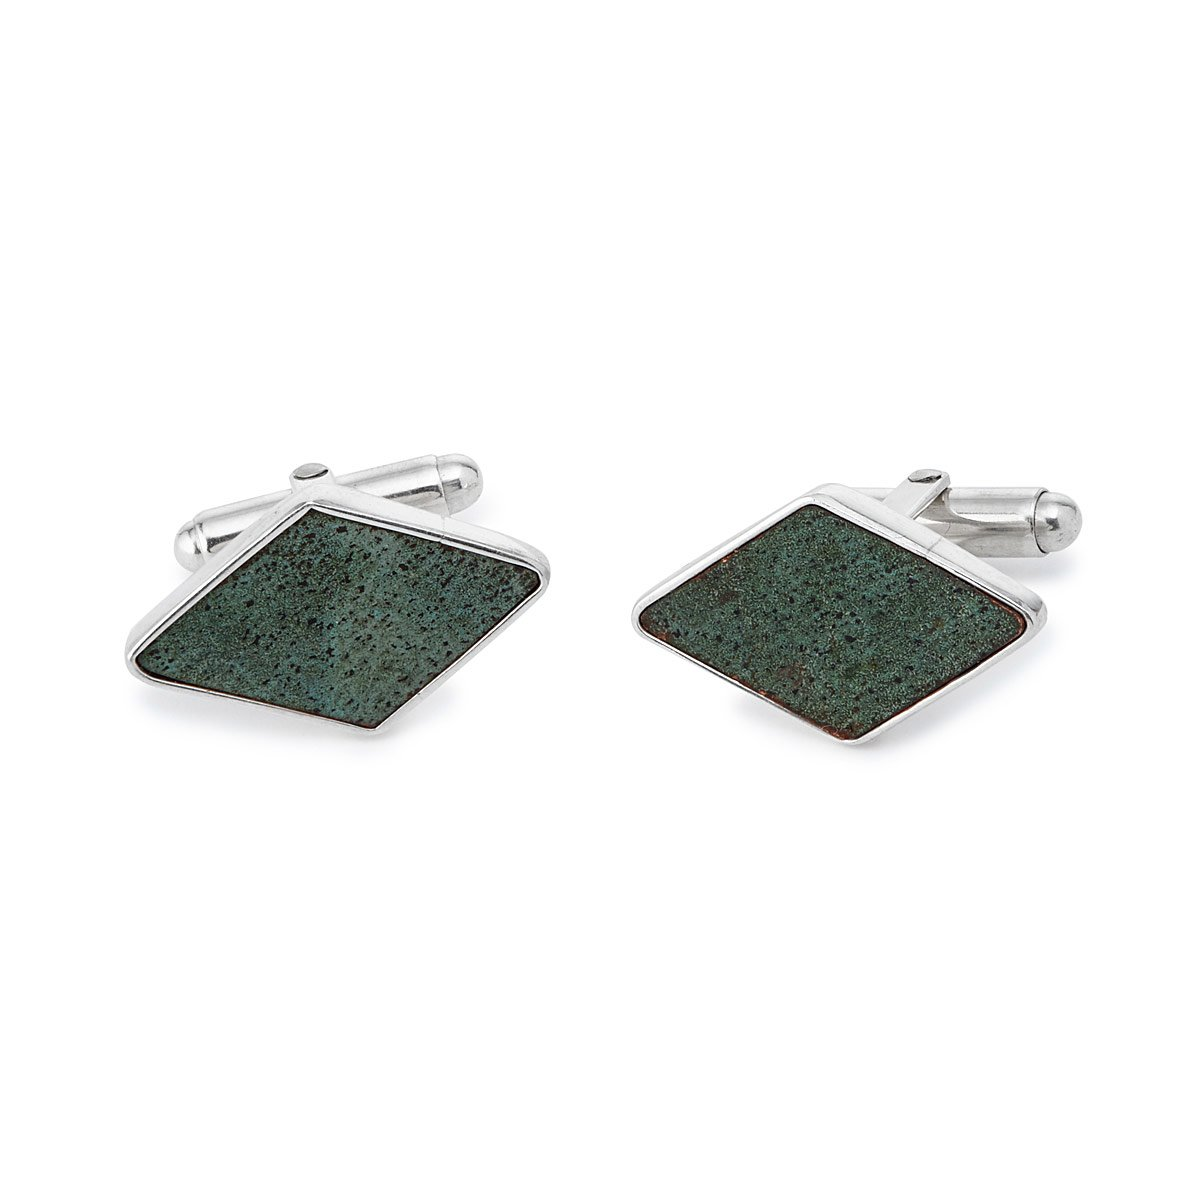 Frank Lloyd Wright Graycliff Cufflinks Gifts For Men Architecture Circuit Board Uncommongoods